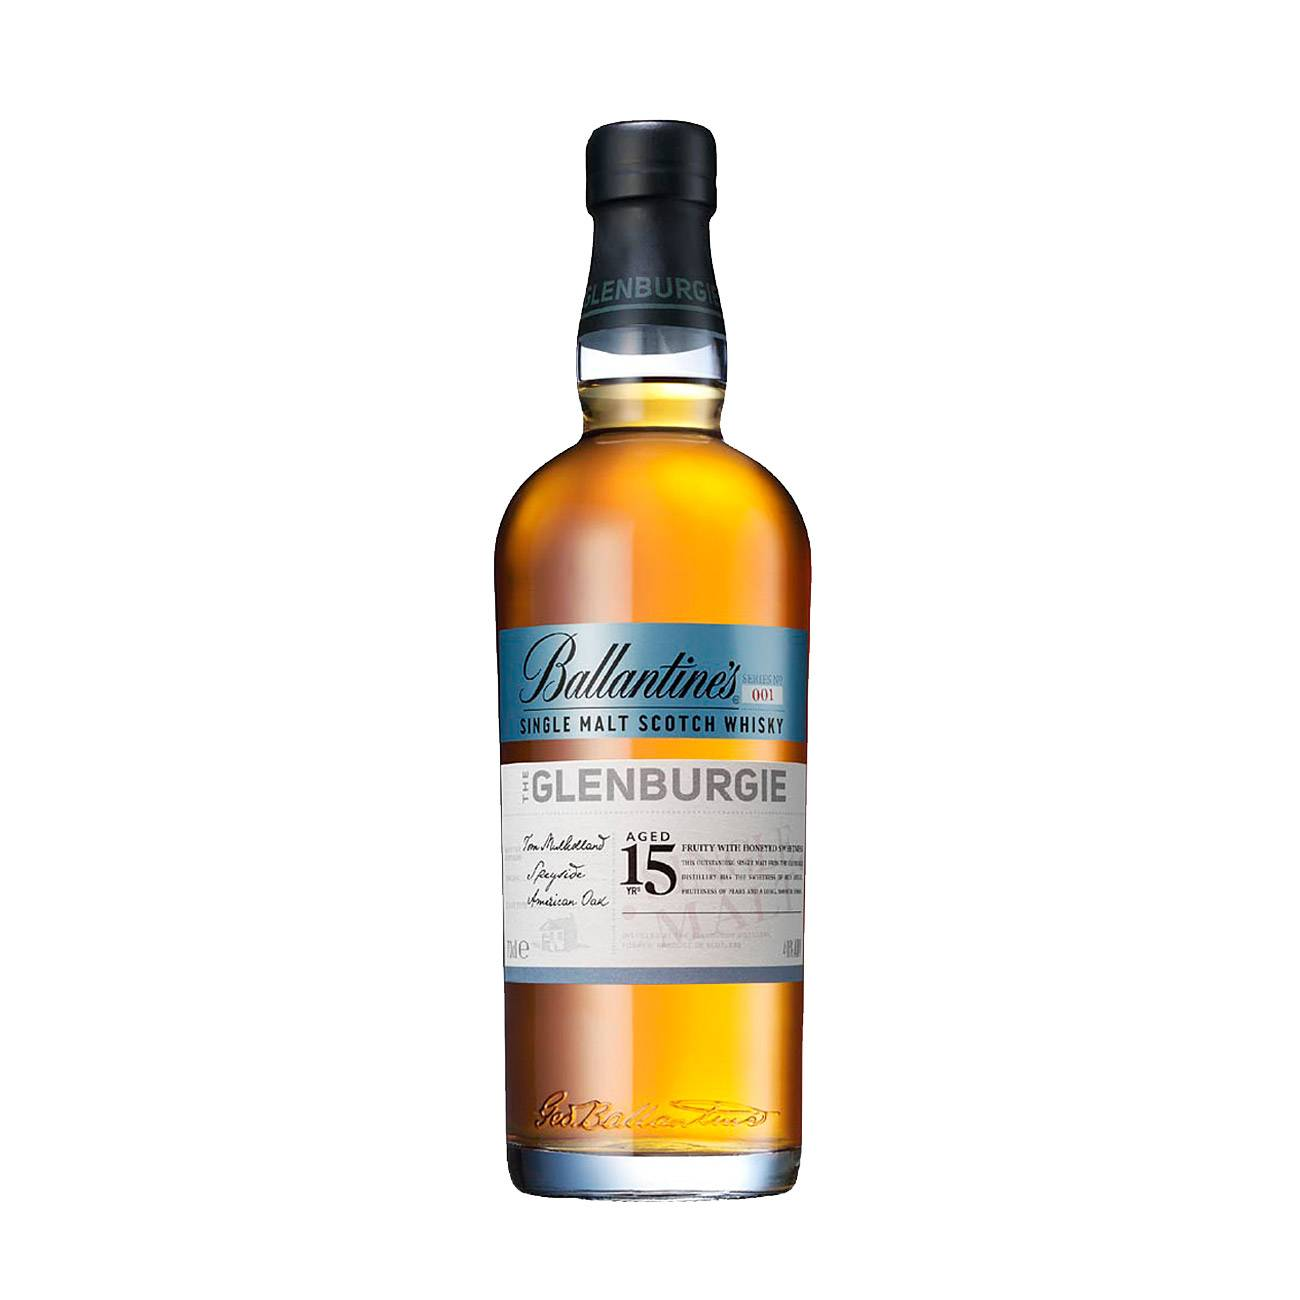 GLENBURGIE 15 YEARS OLD 700 Ml